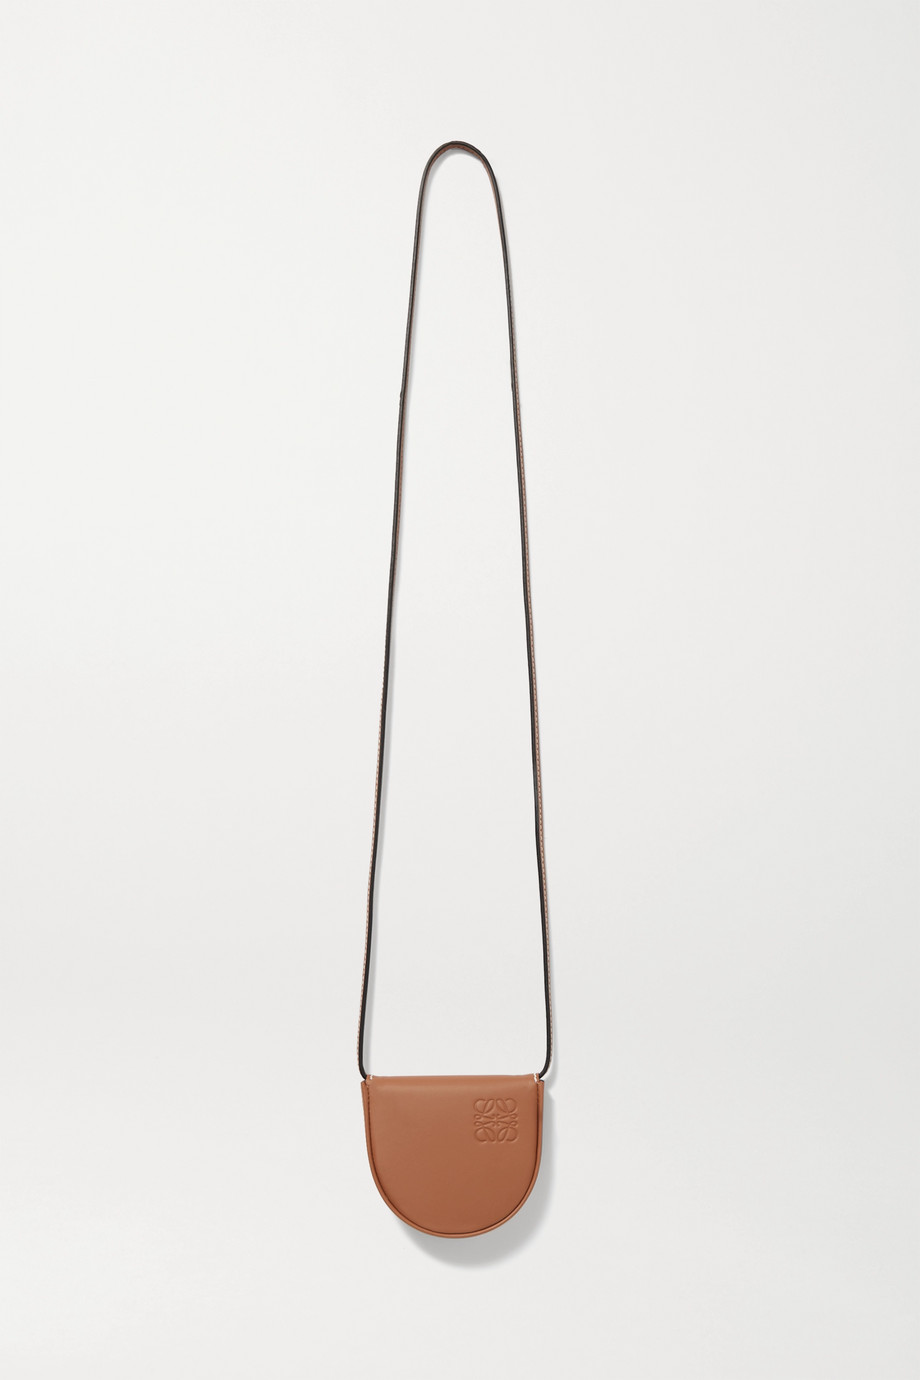 Loewe Heel mini leather pouch